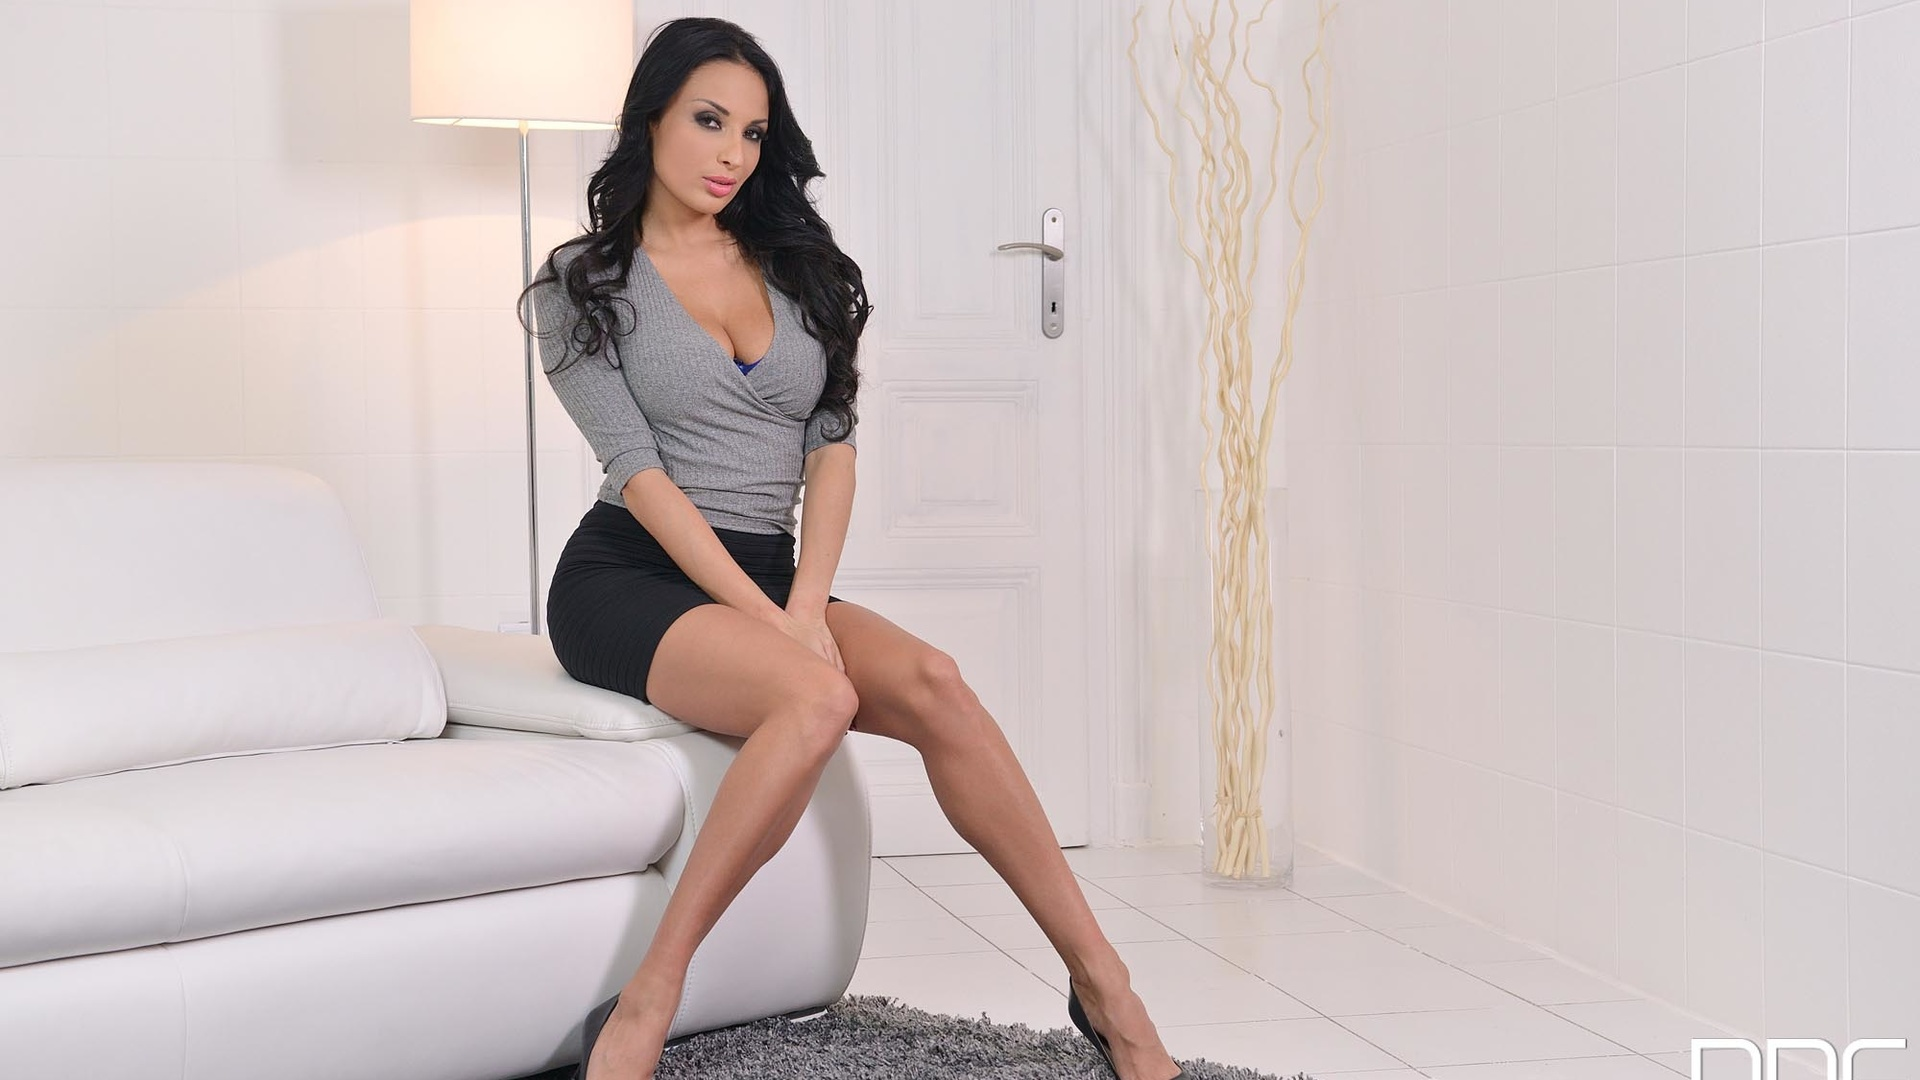 Anissa Kate High Quality Wallpapers